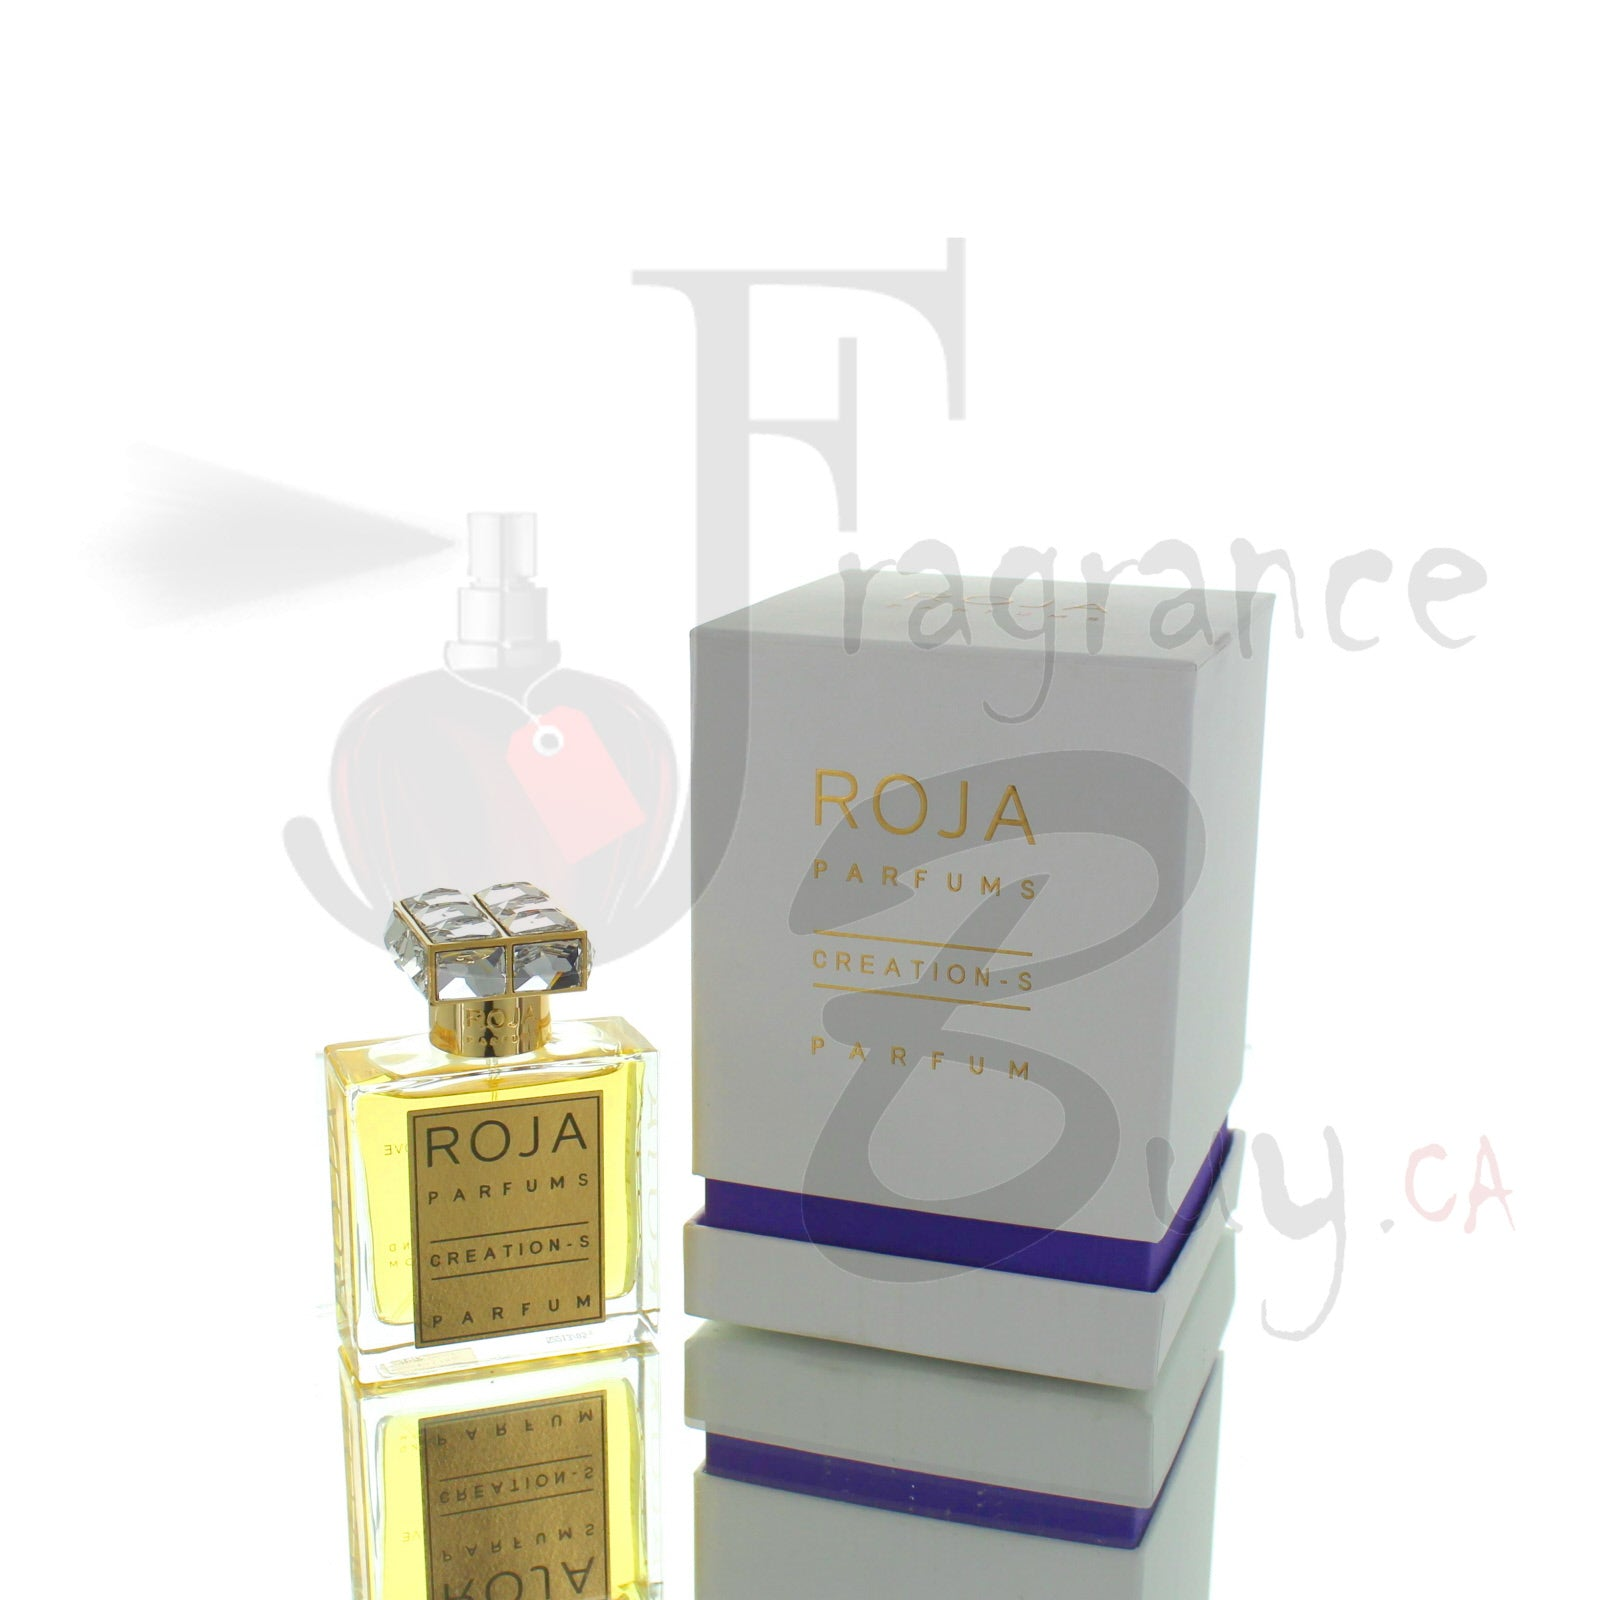 Roja Creation S Parfum For Woman